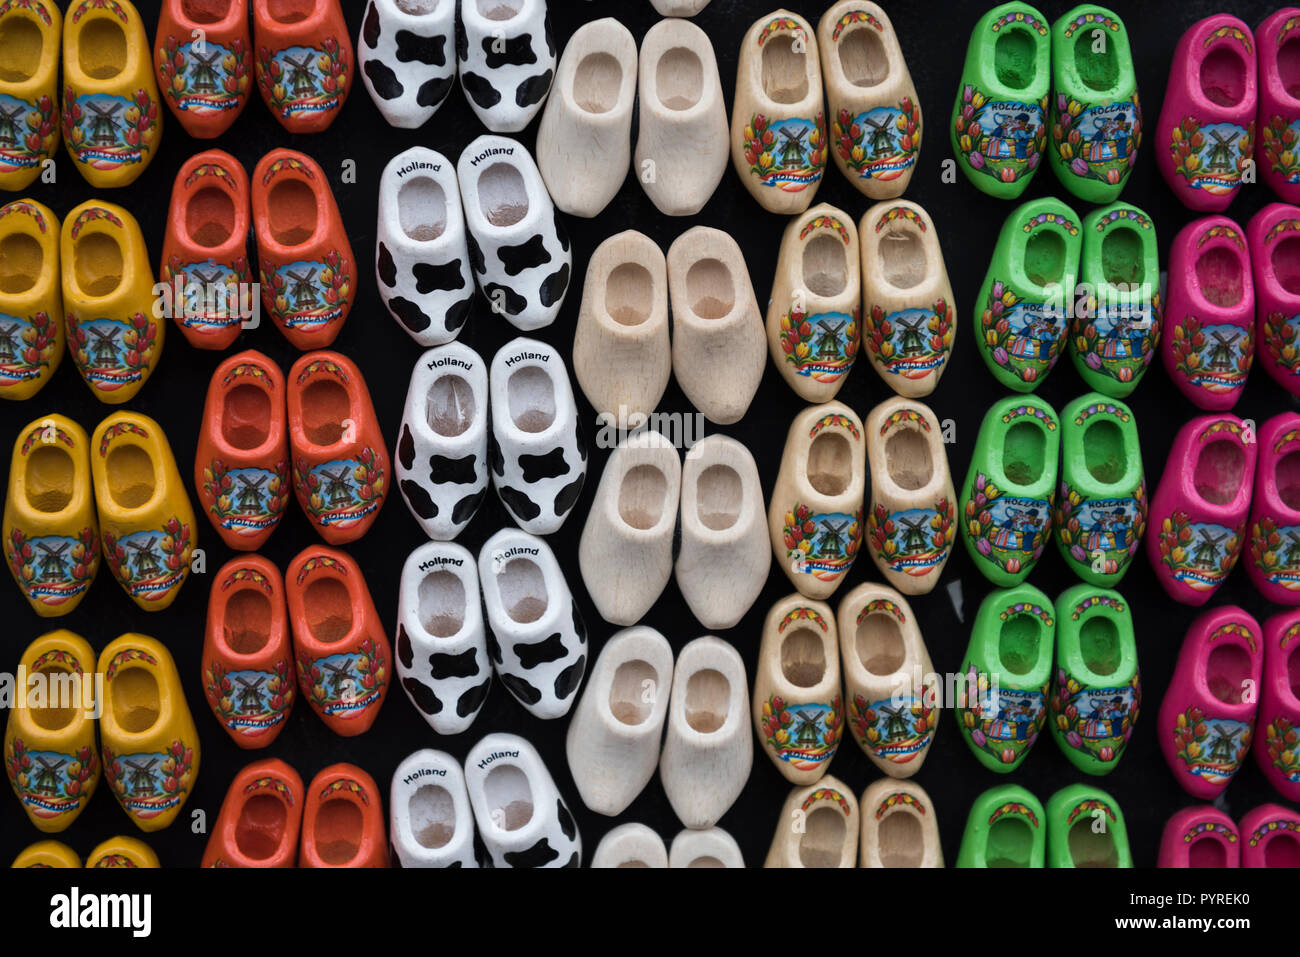 Traditional Dutch clogs souvenirs for tourists at the Flower Market in Amsterdam, Holland - Stock Image